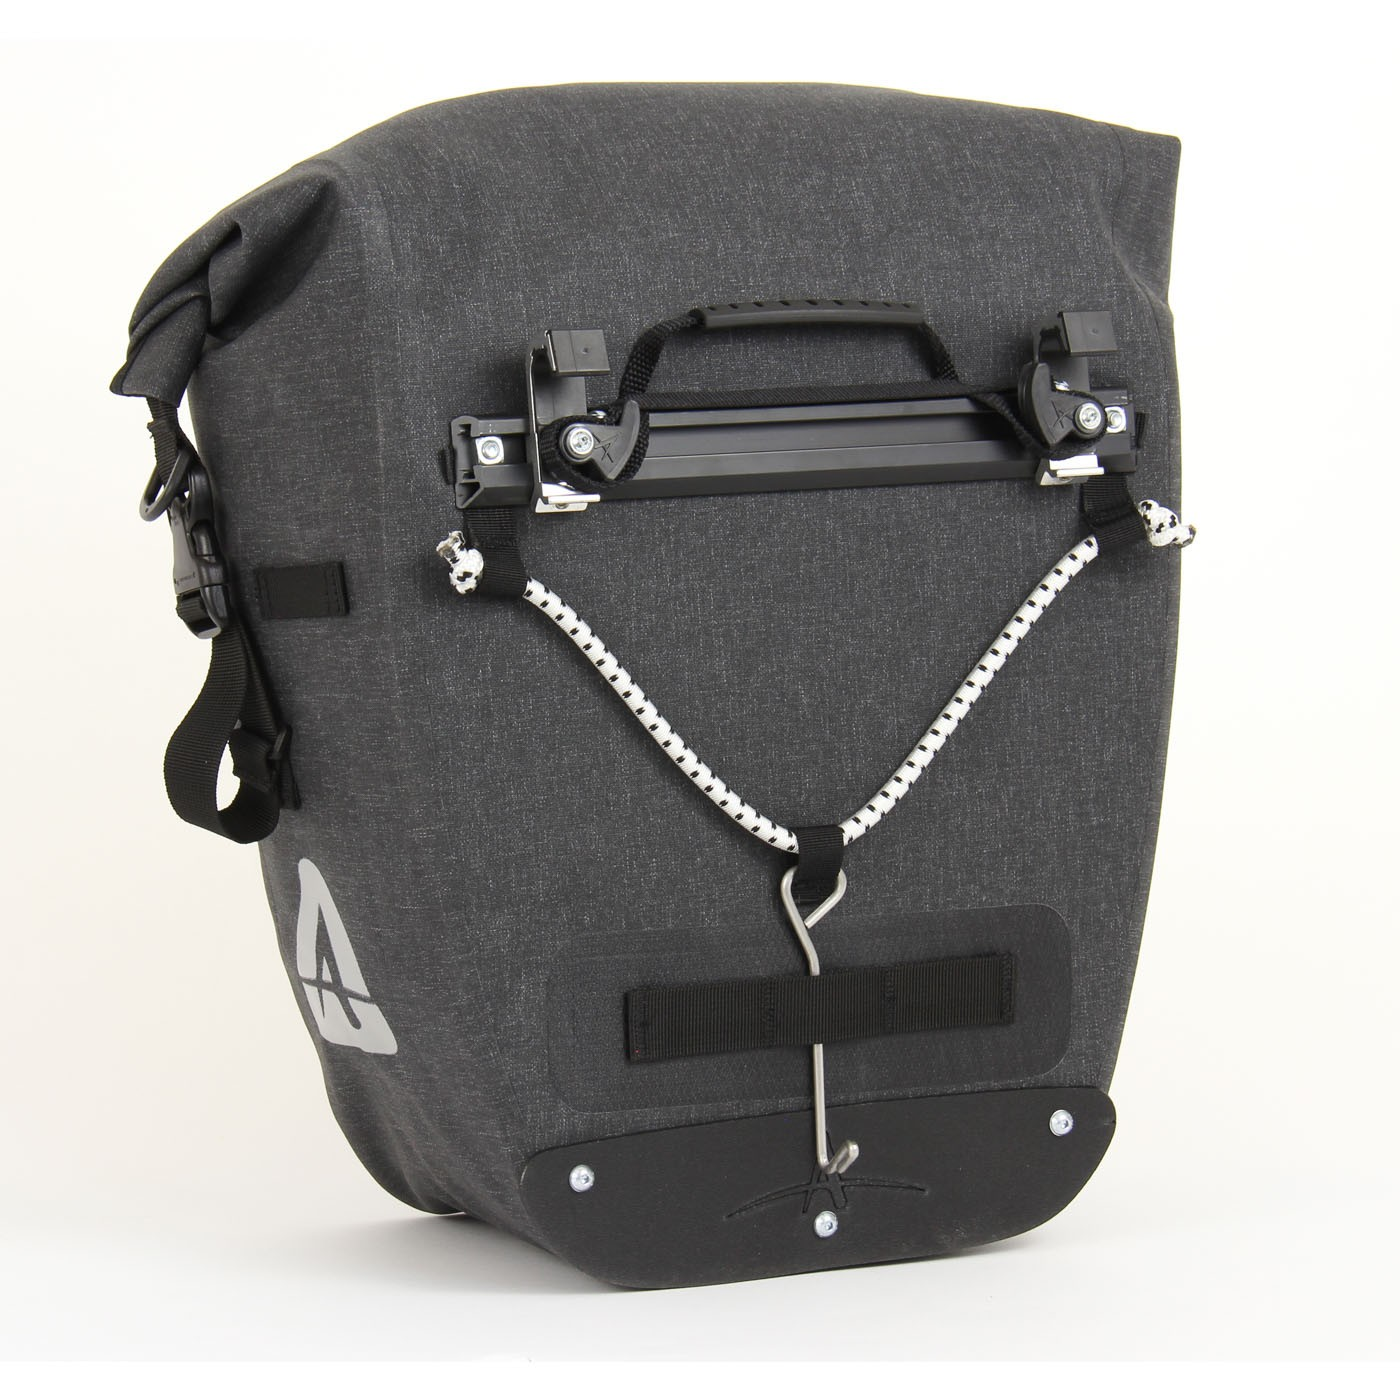 Grey pannier with a hook at the bottom on the back